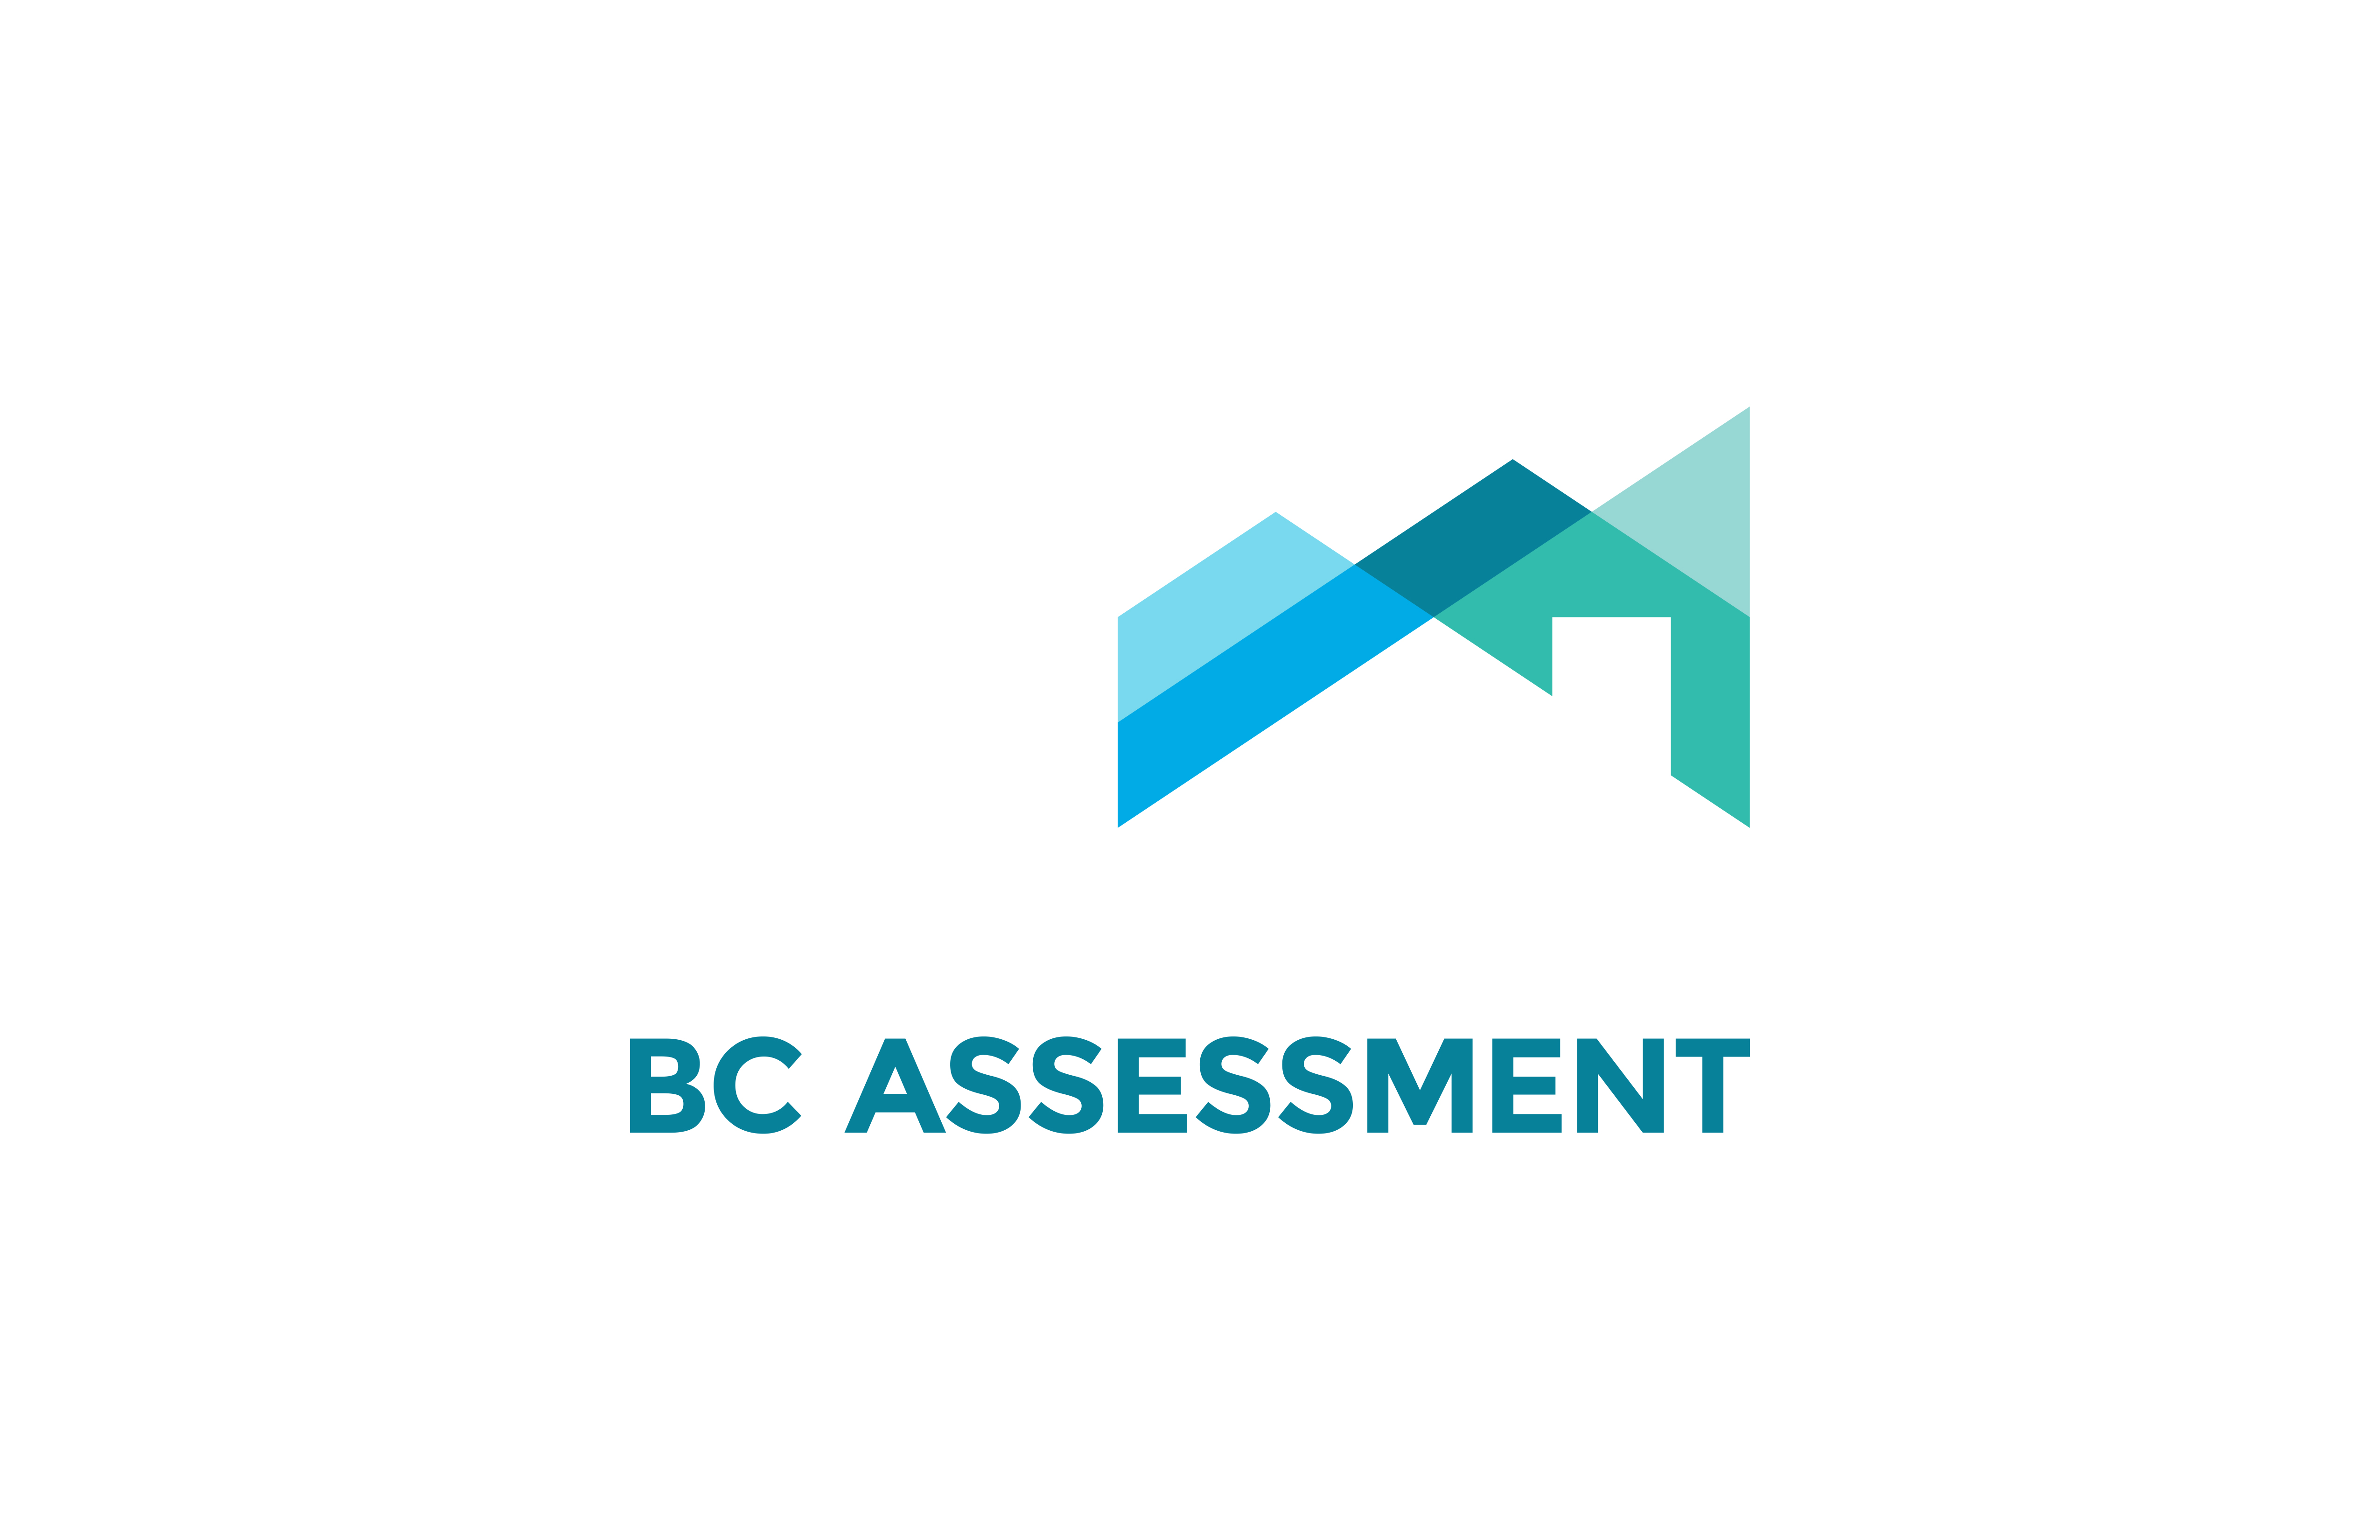 Vancouver Island 2020 Property Assessments in the Mail